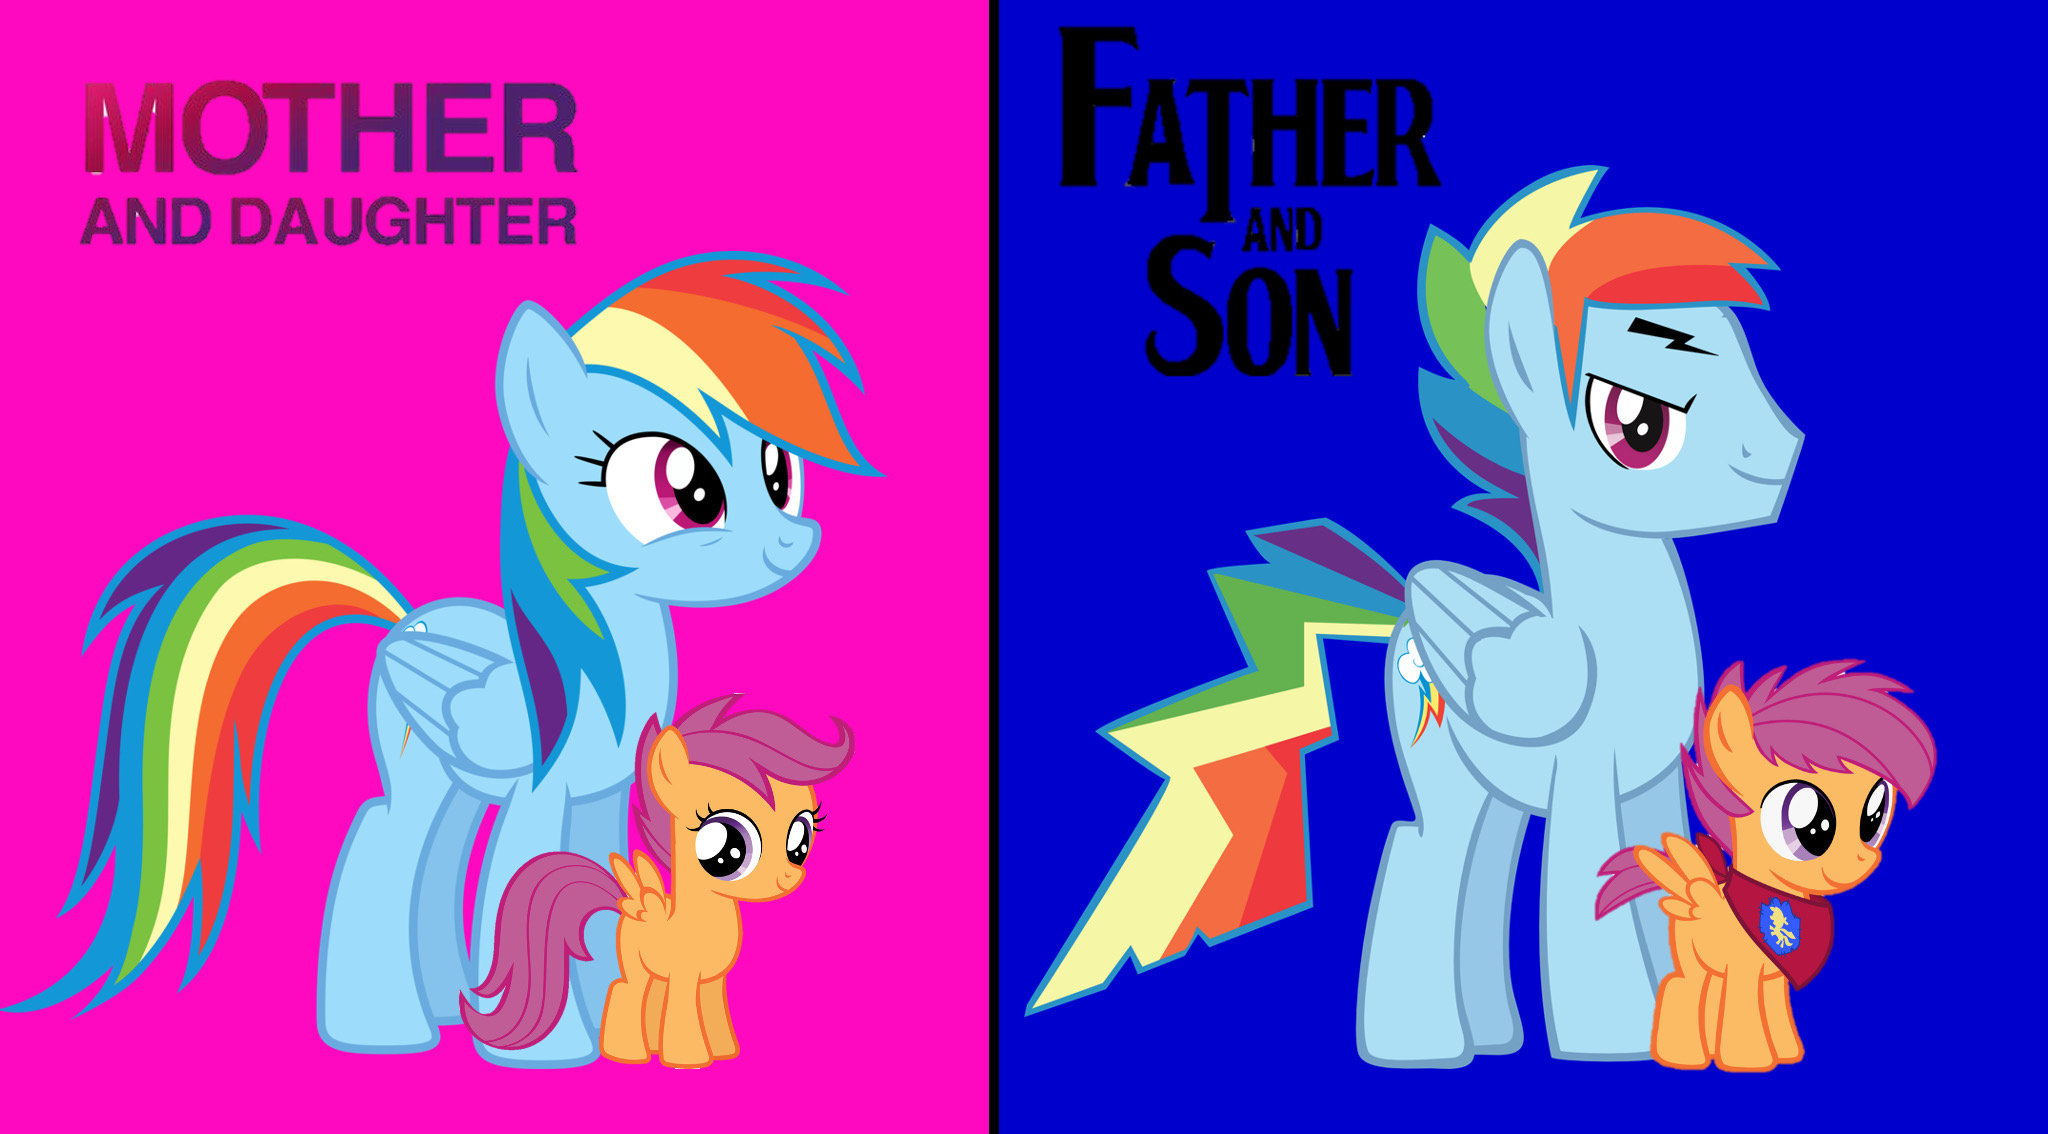 Rainbow Dash And Scootaloo Gender Swap By Darkmoonanimation On Deviantart Scootaloo is a little bit like rainbow dash, she is very competitive and athletic. rainbow dash and scootaloo gender swap